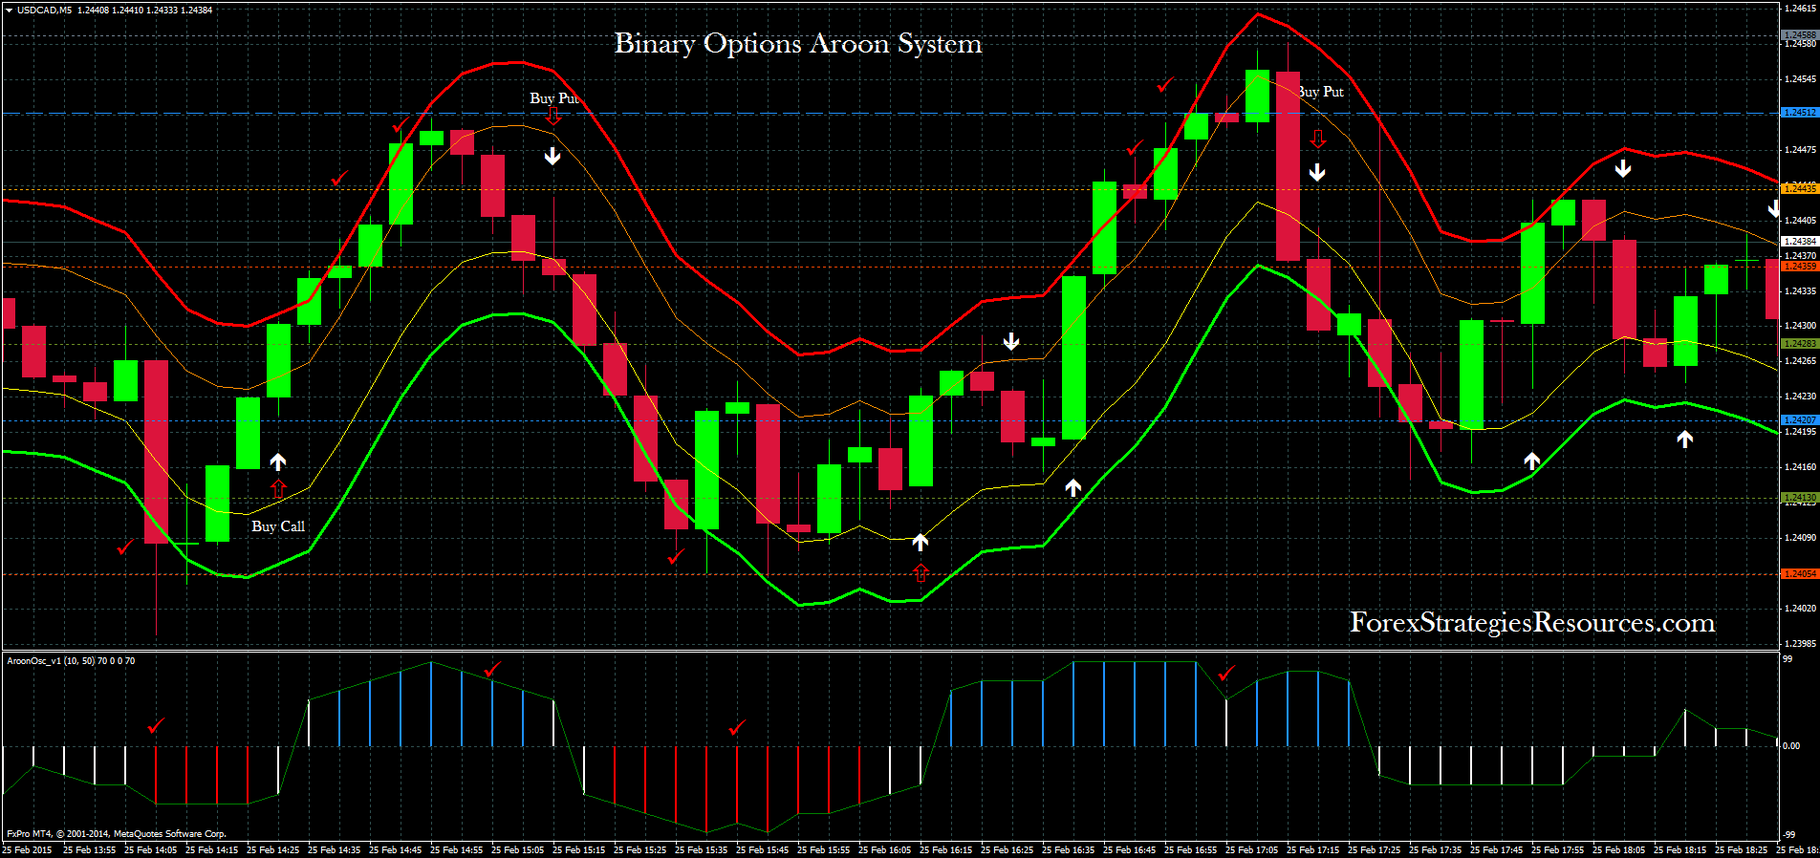 Best cci settings for day trading binary options